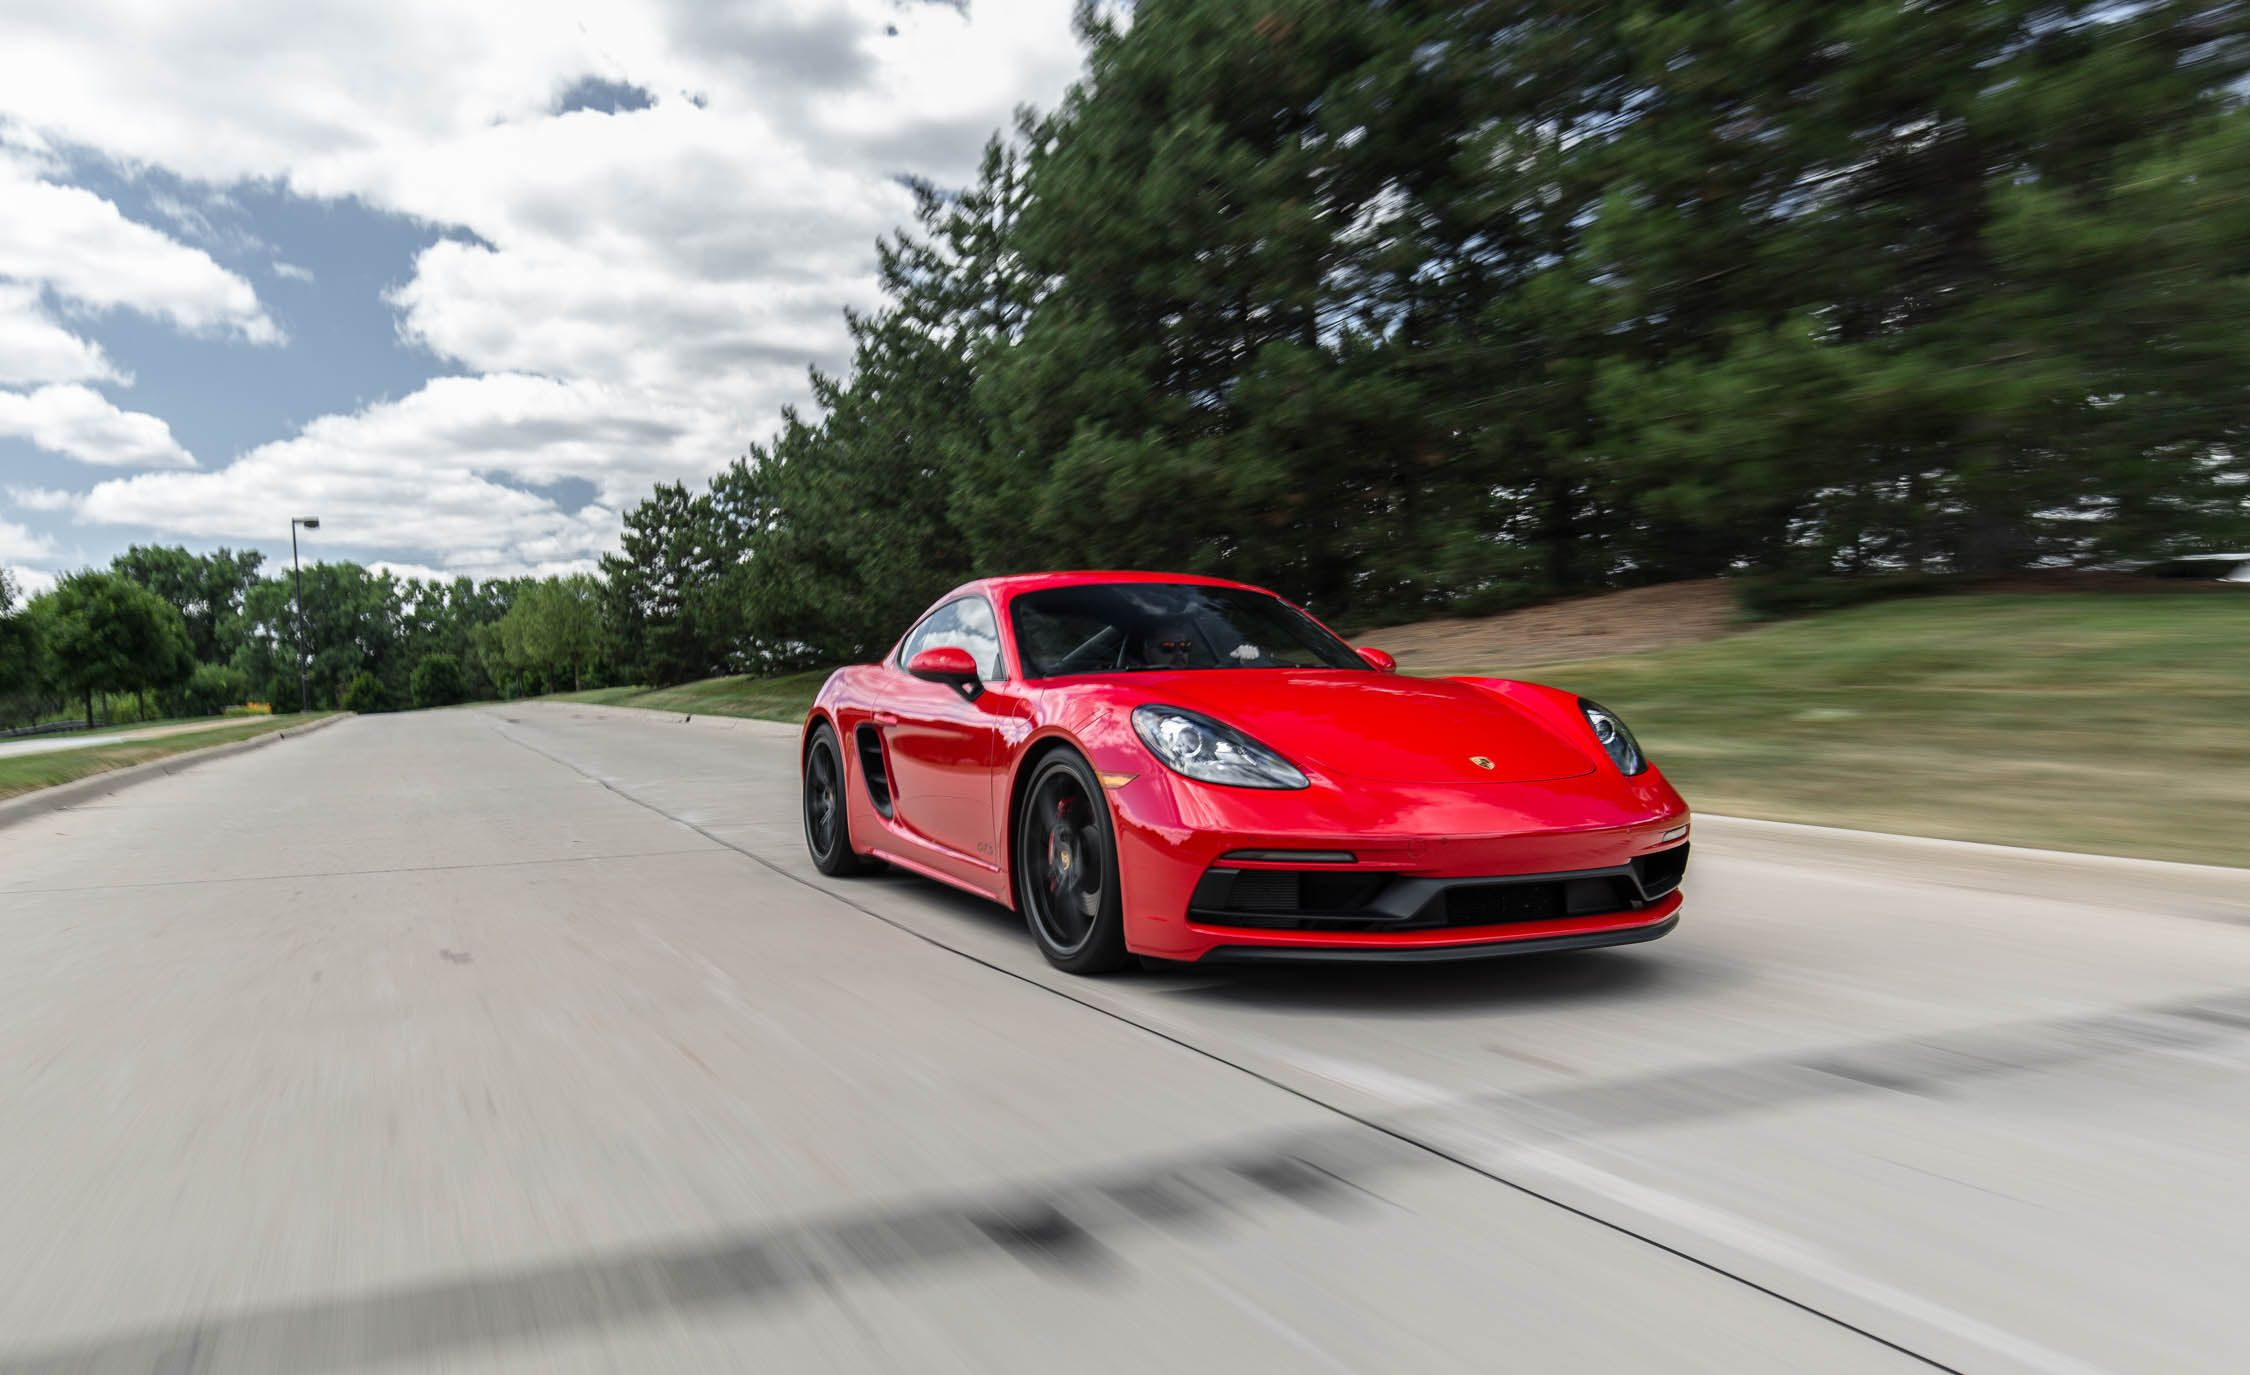 2019 Porsche 718 Cayman Review, Pricing, and Specs